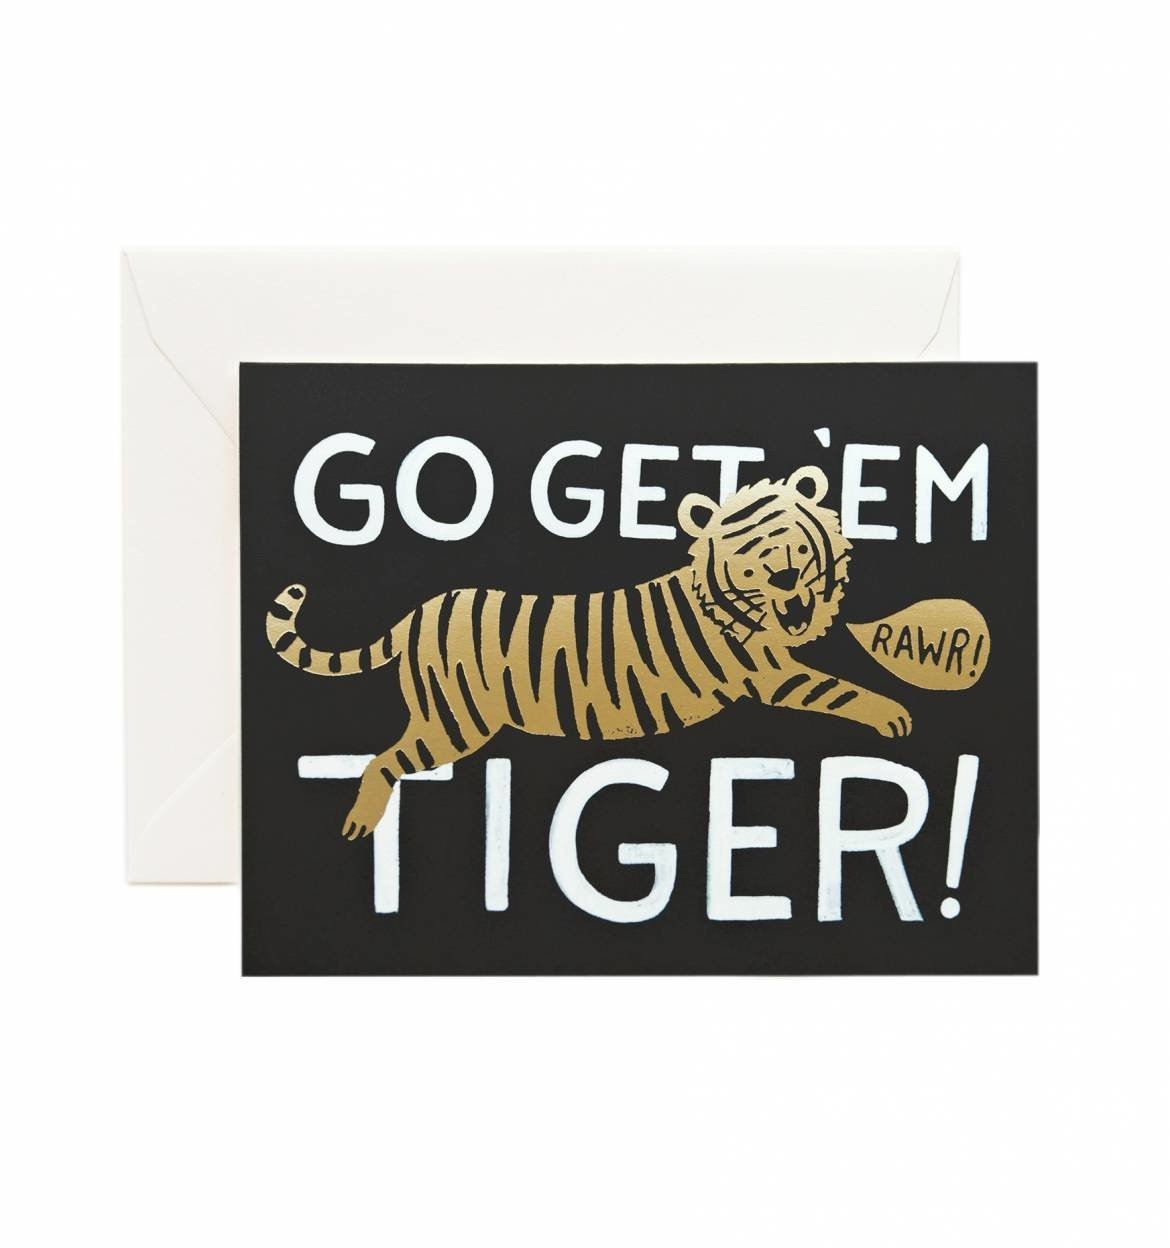 Photo 1 of 1 in Go Get 'Em Tiger Greeting Card by Rifle Paper Co.